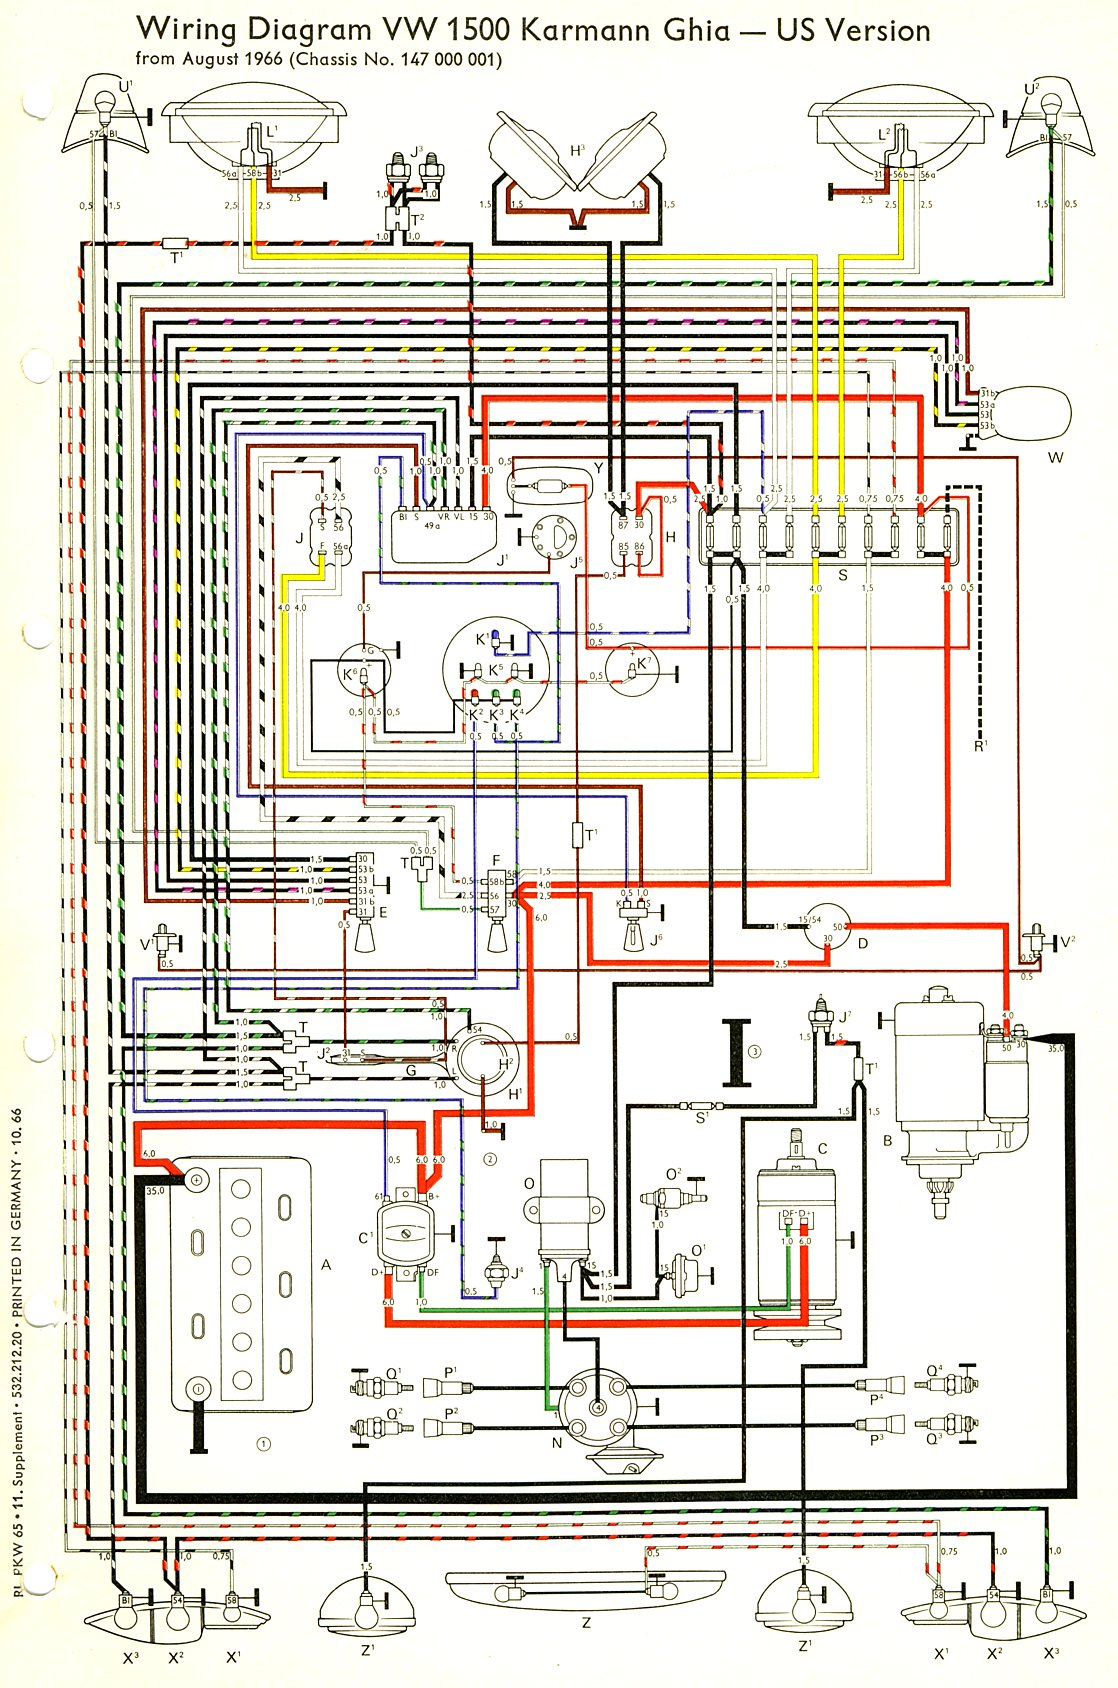 hight resolution of 1963 vw engine wiring archive of automotive wiring diagram u2022 rh rightbrothers co